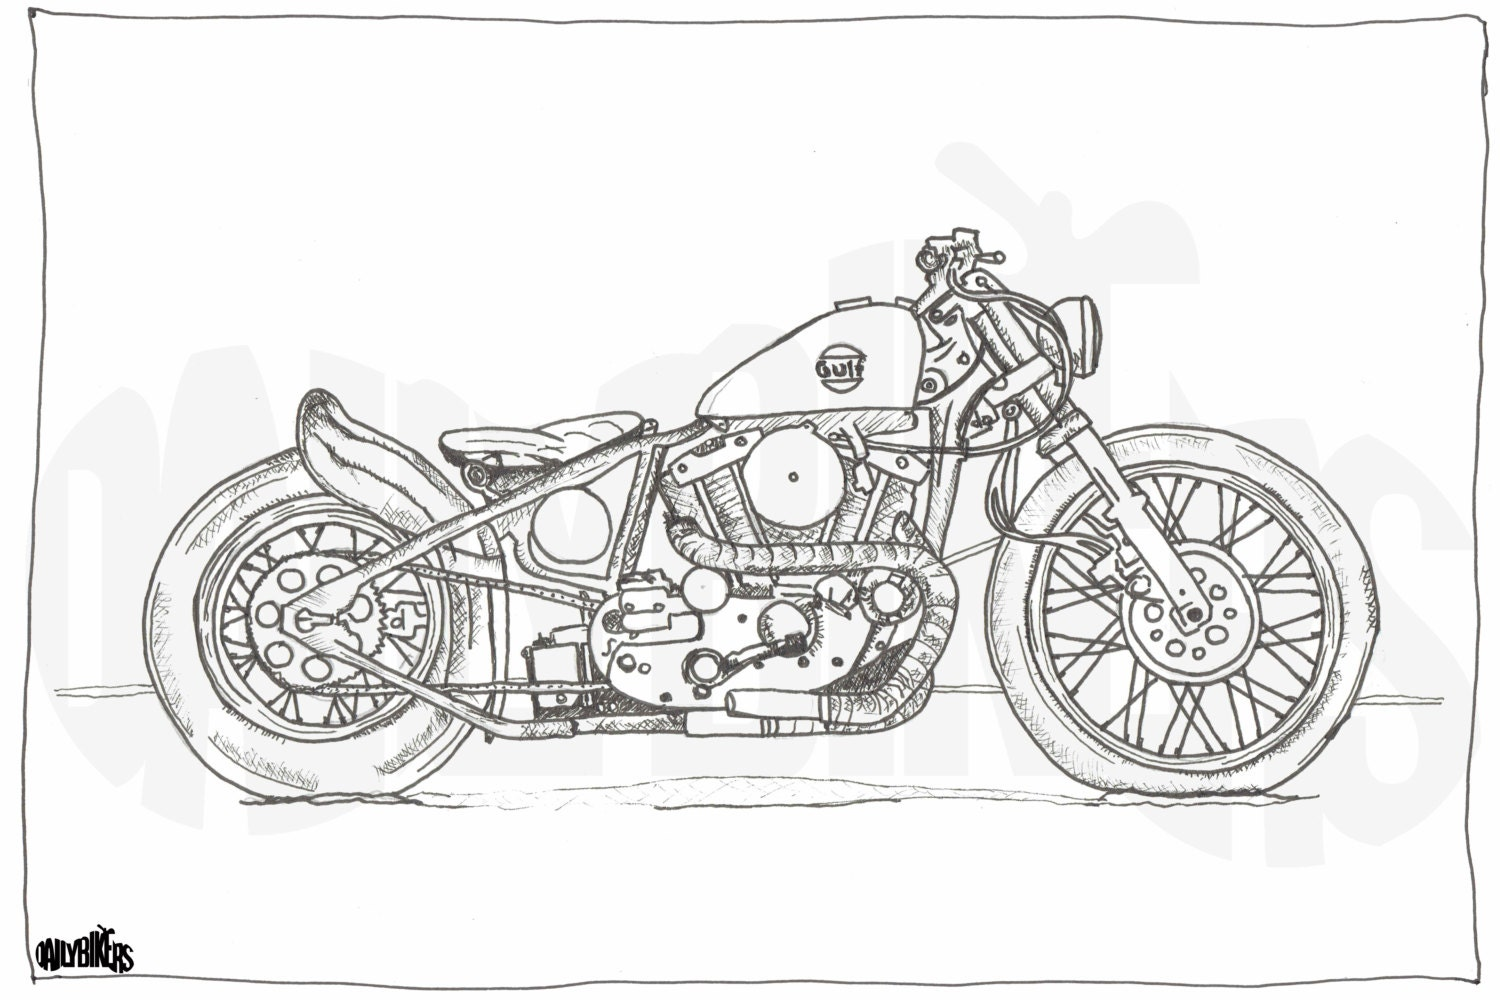 motocross bike engine diagram html